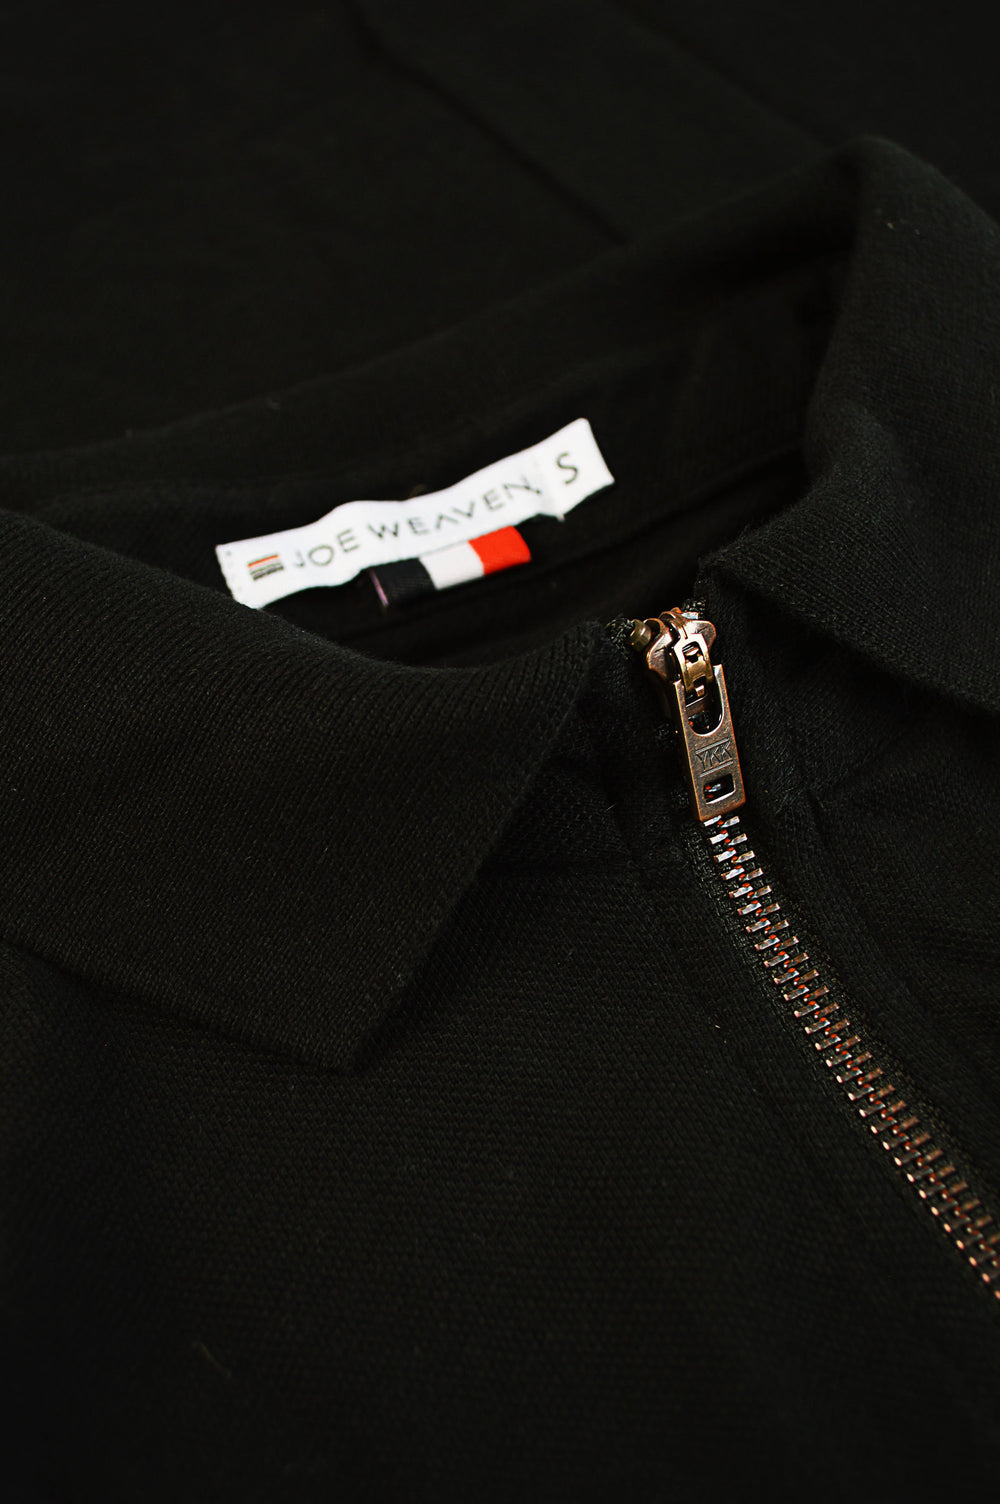 raw vintage ykk zipper black polo